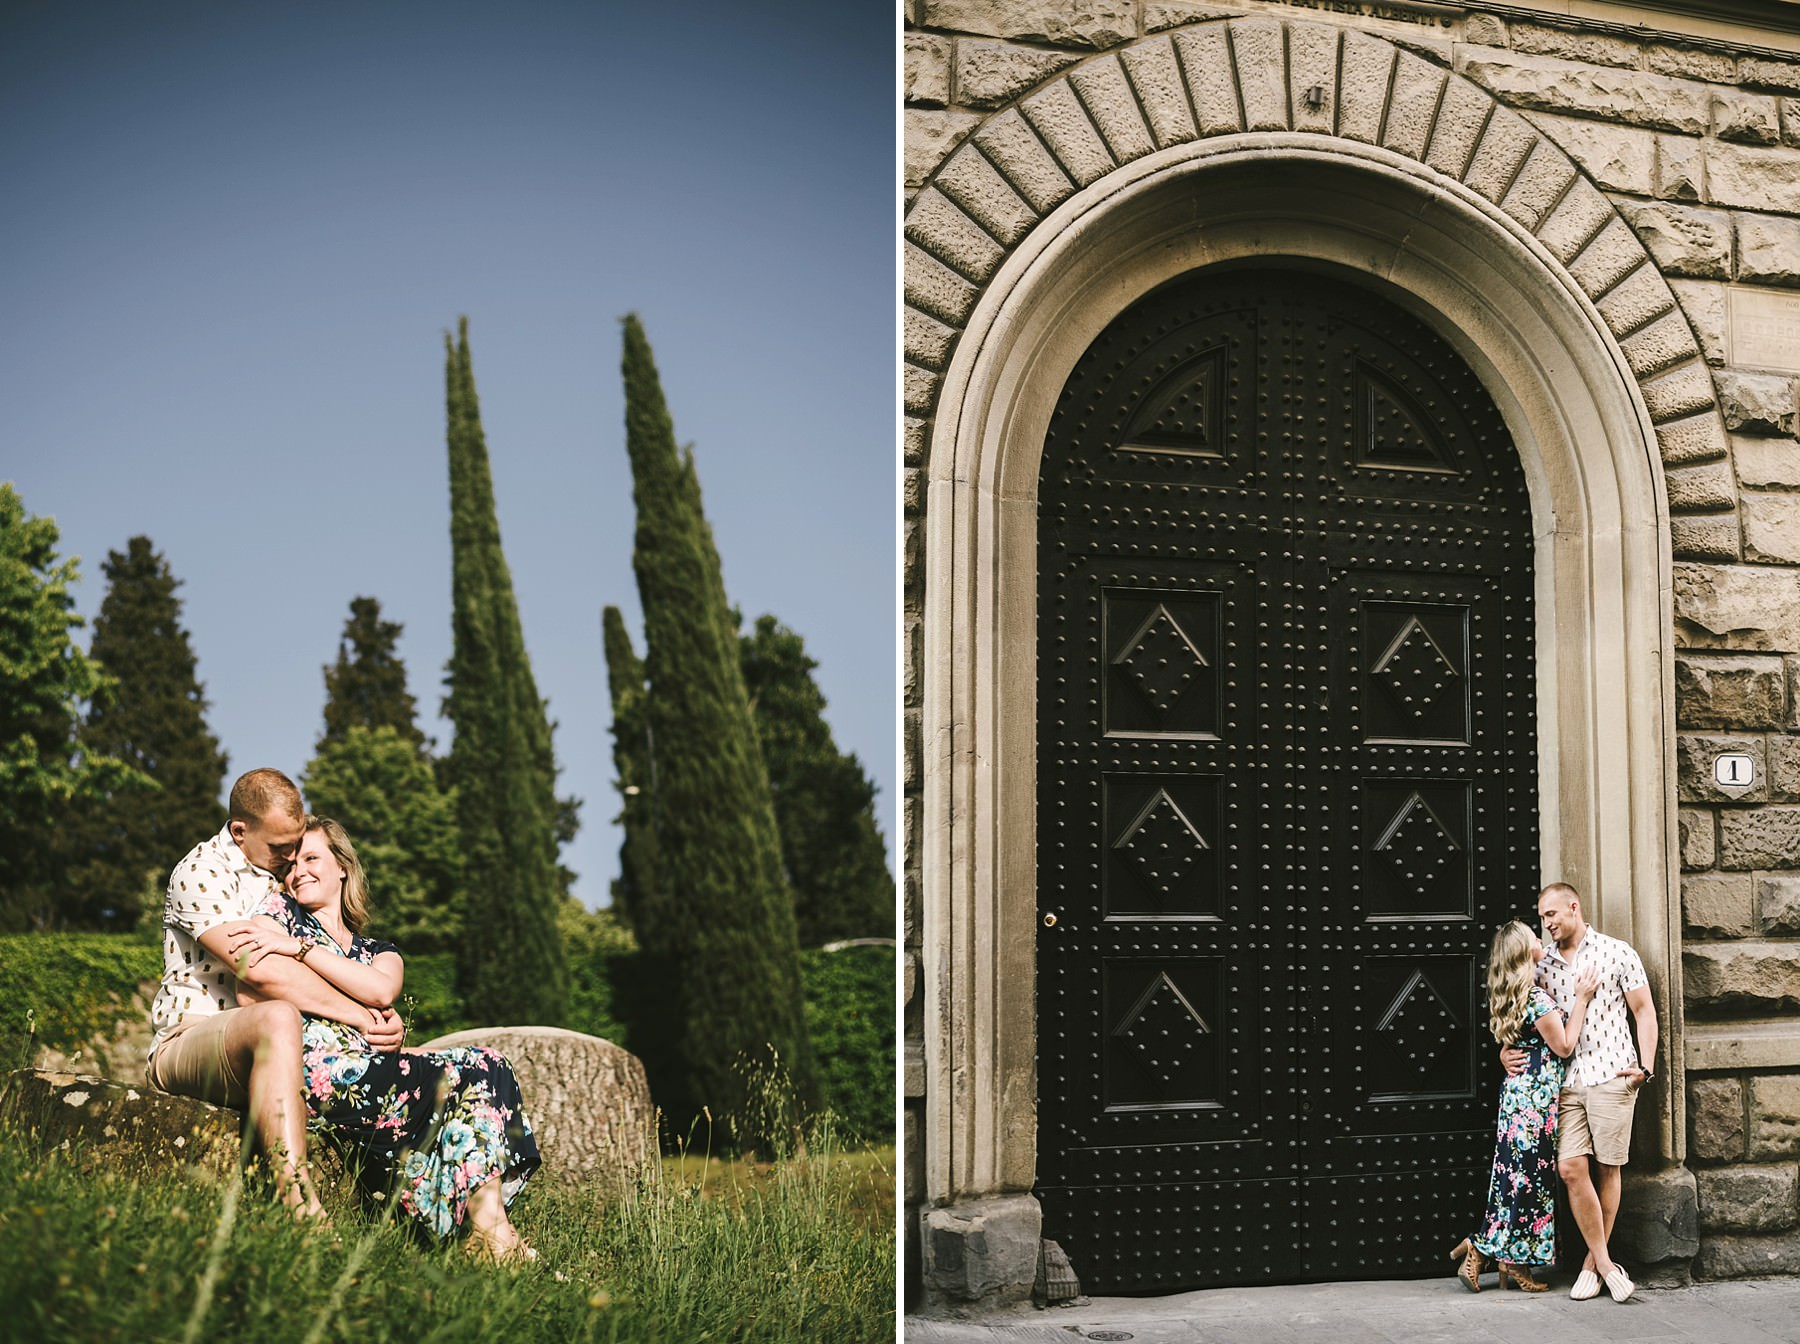 Enjoy your vacation and commemorate a magic moment with an engagement photo session in Florence